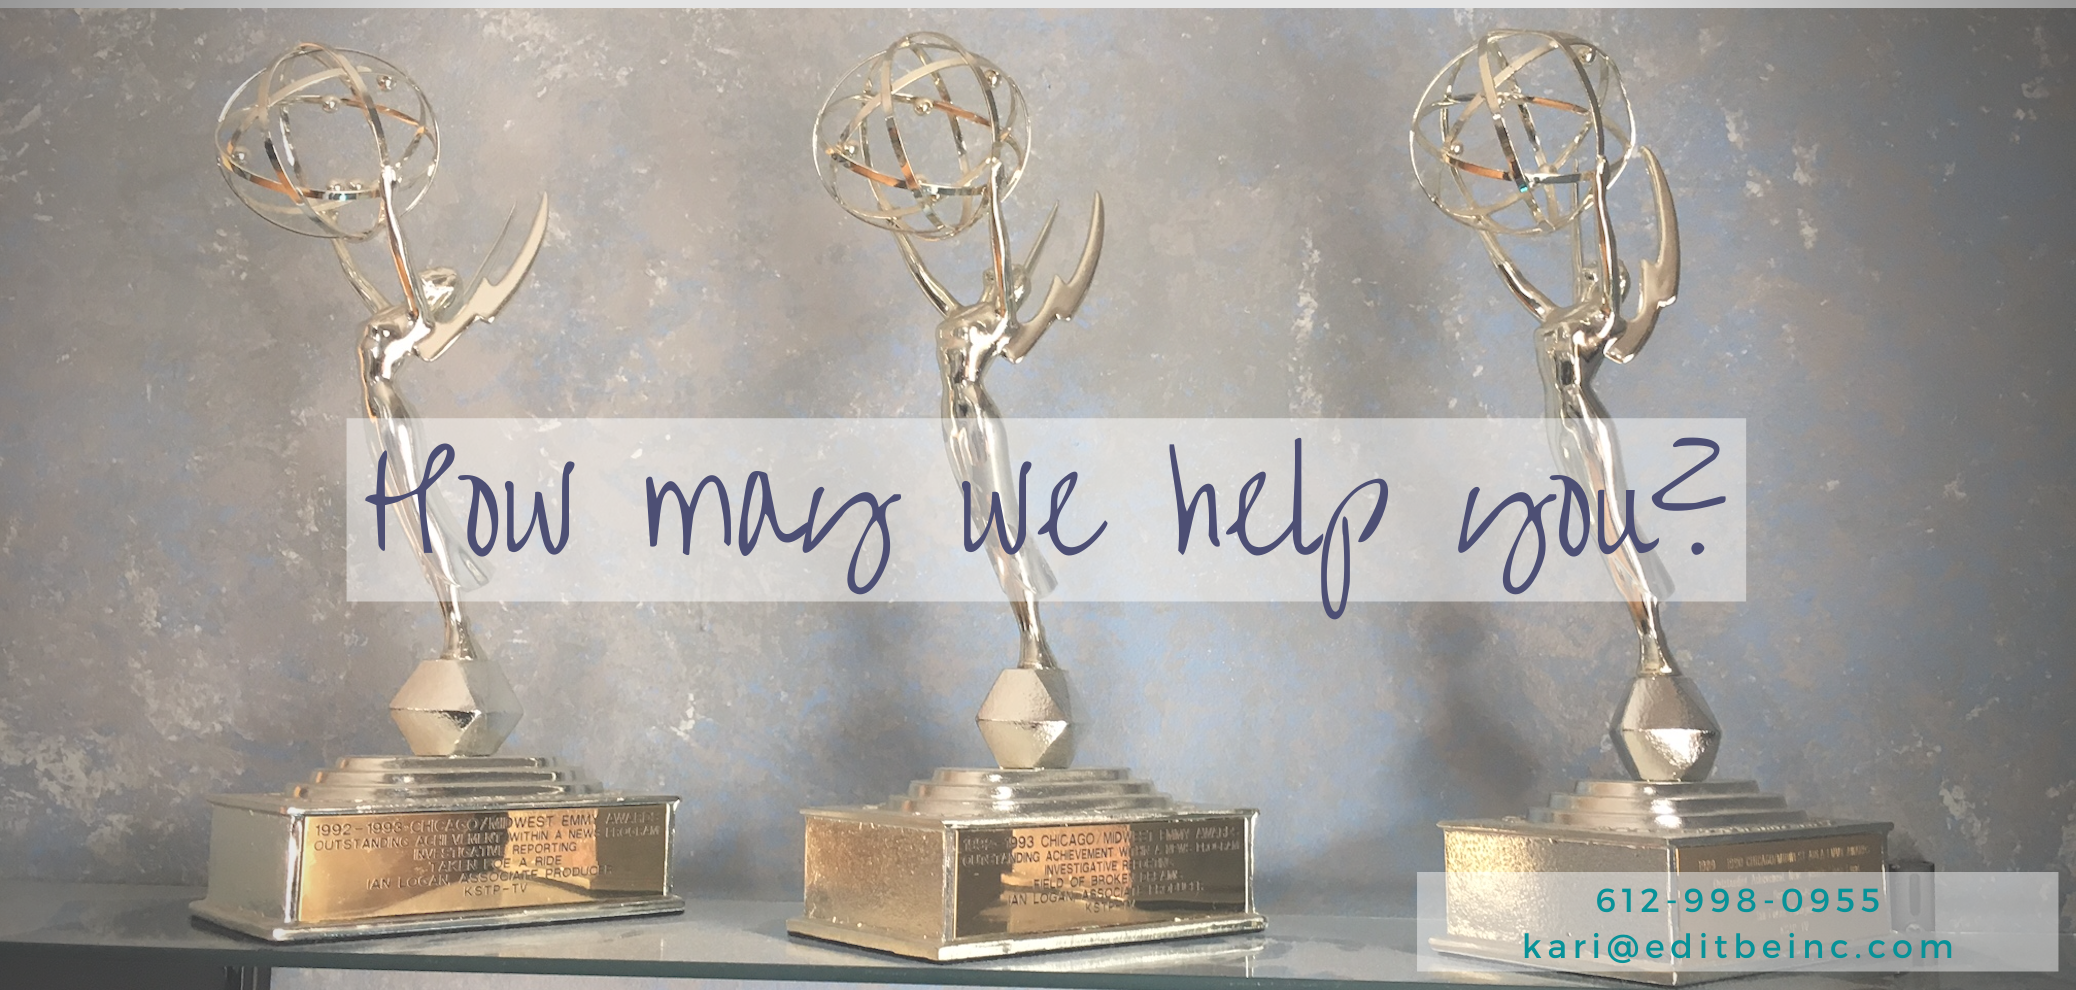 Emmy Contact Us (1)